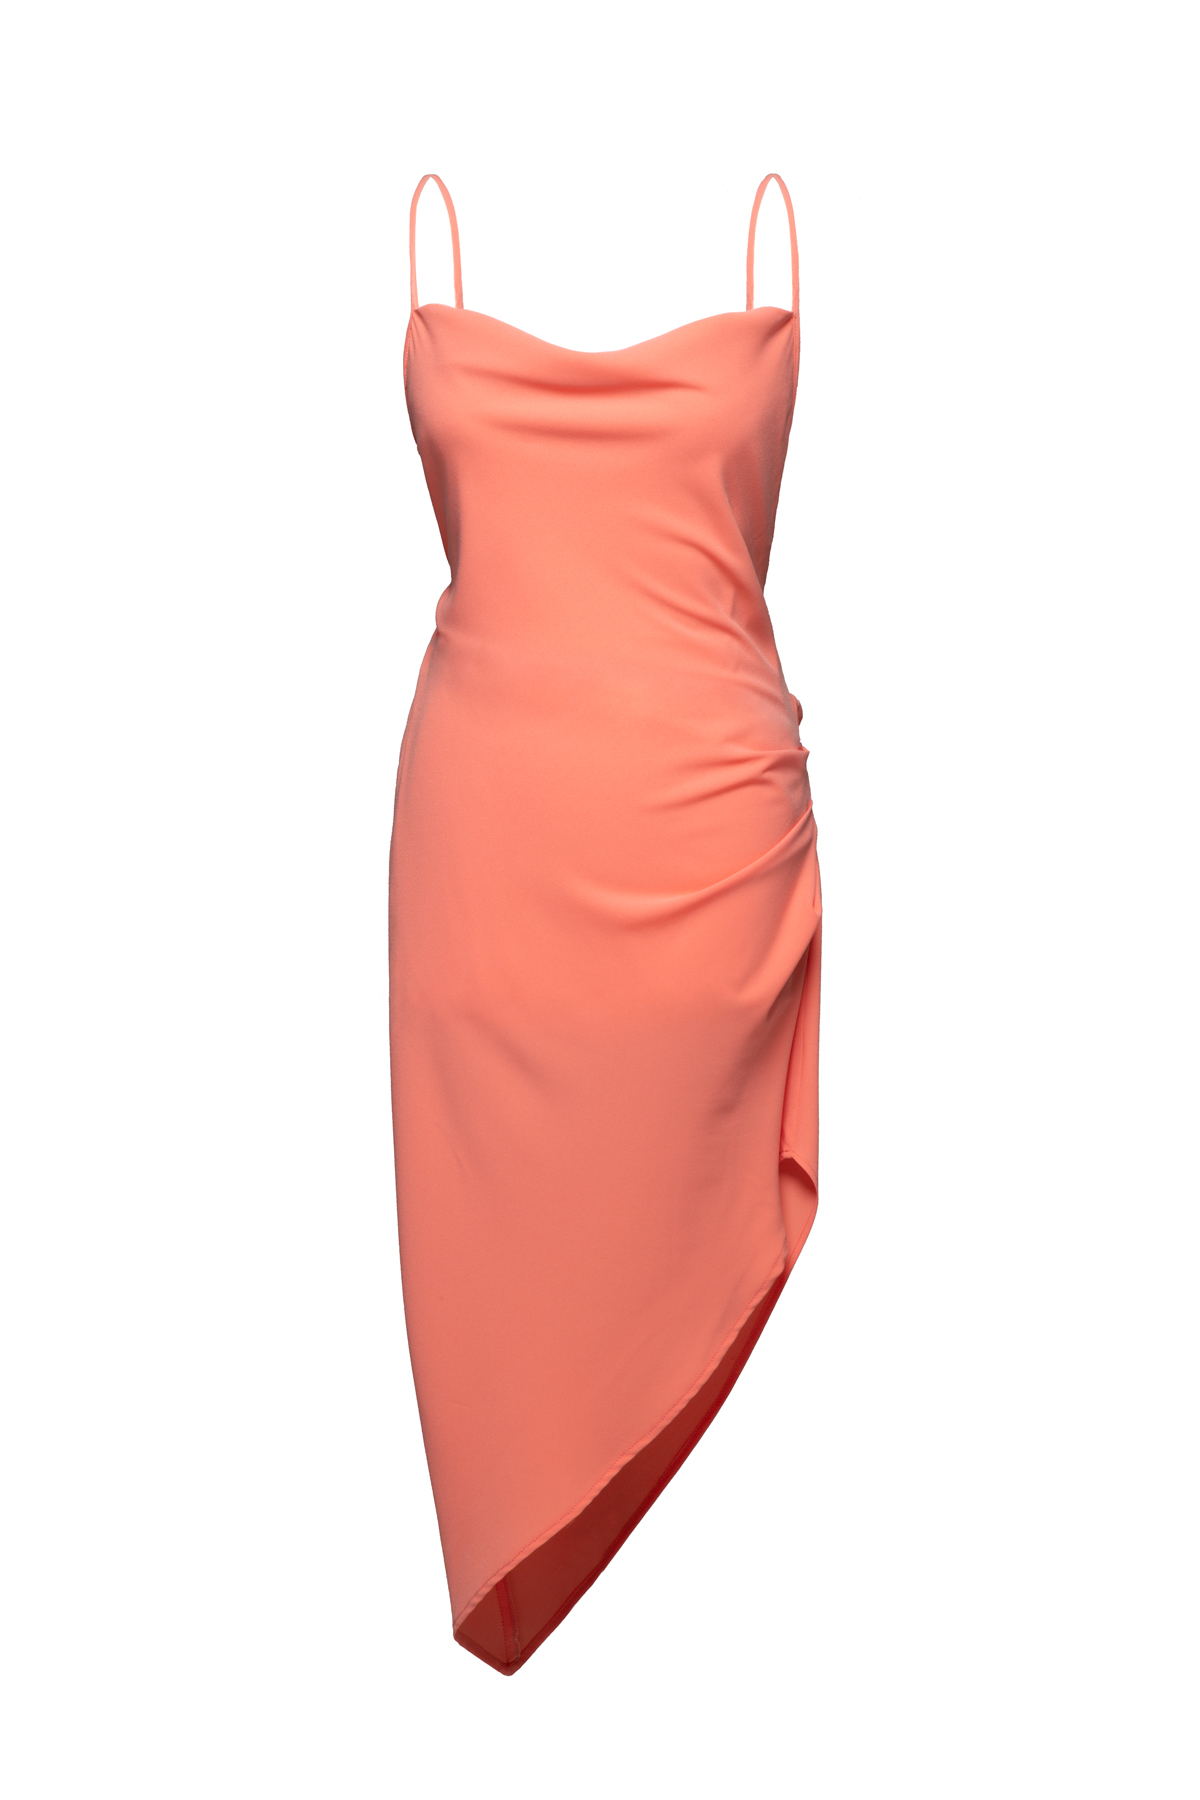 womance-dress-celery-coral